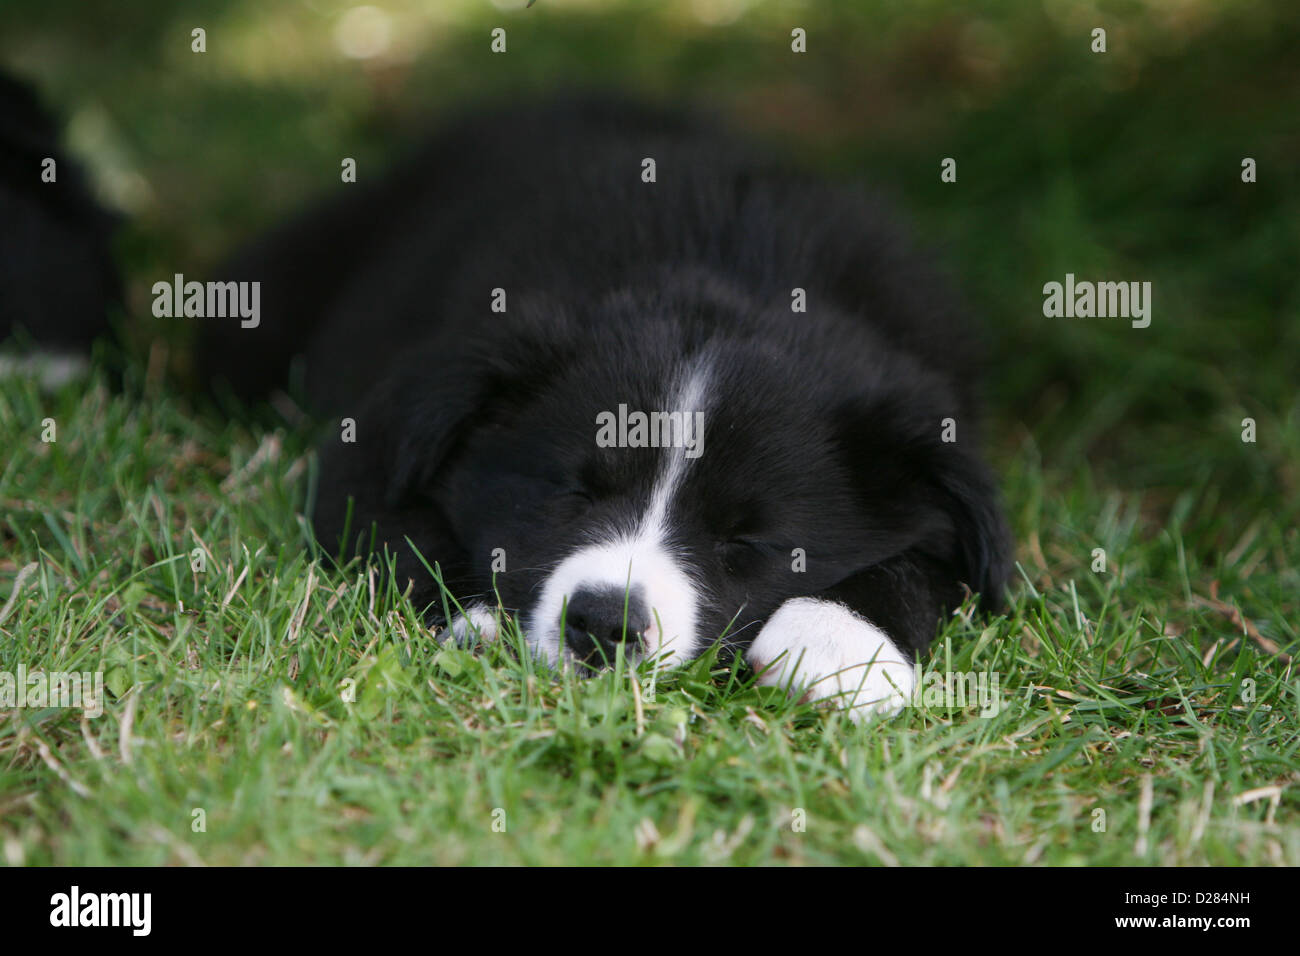 Dog Border Collie puppy sleeping in the grass - Stock Image